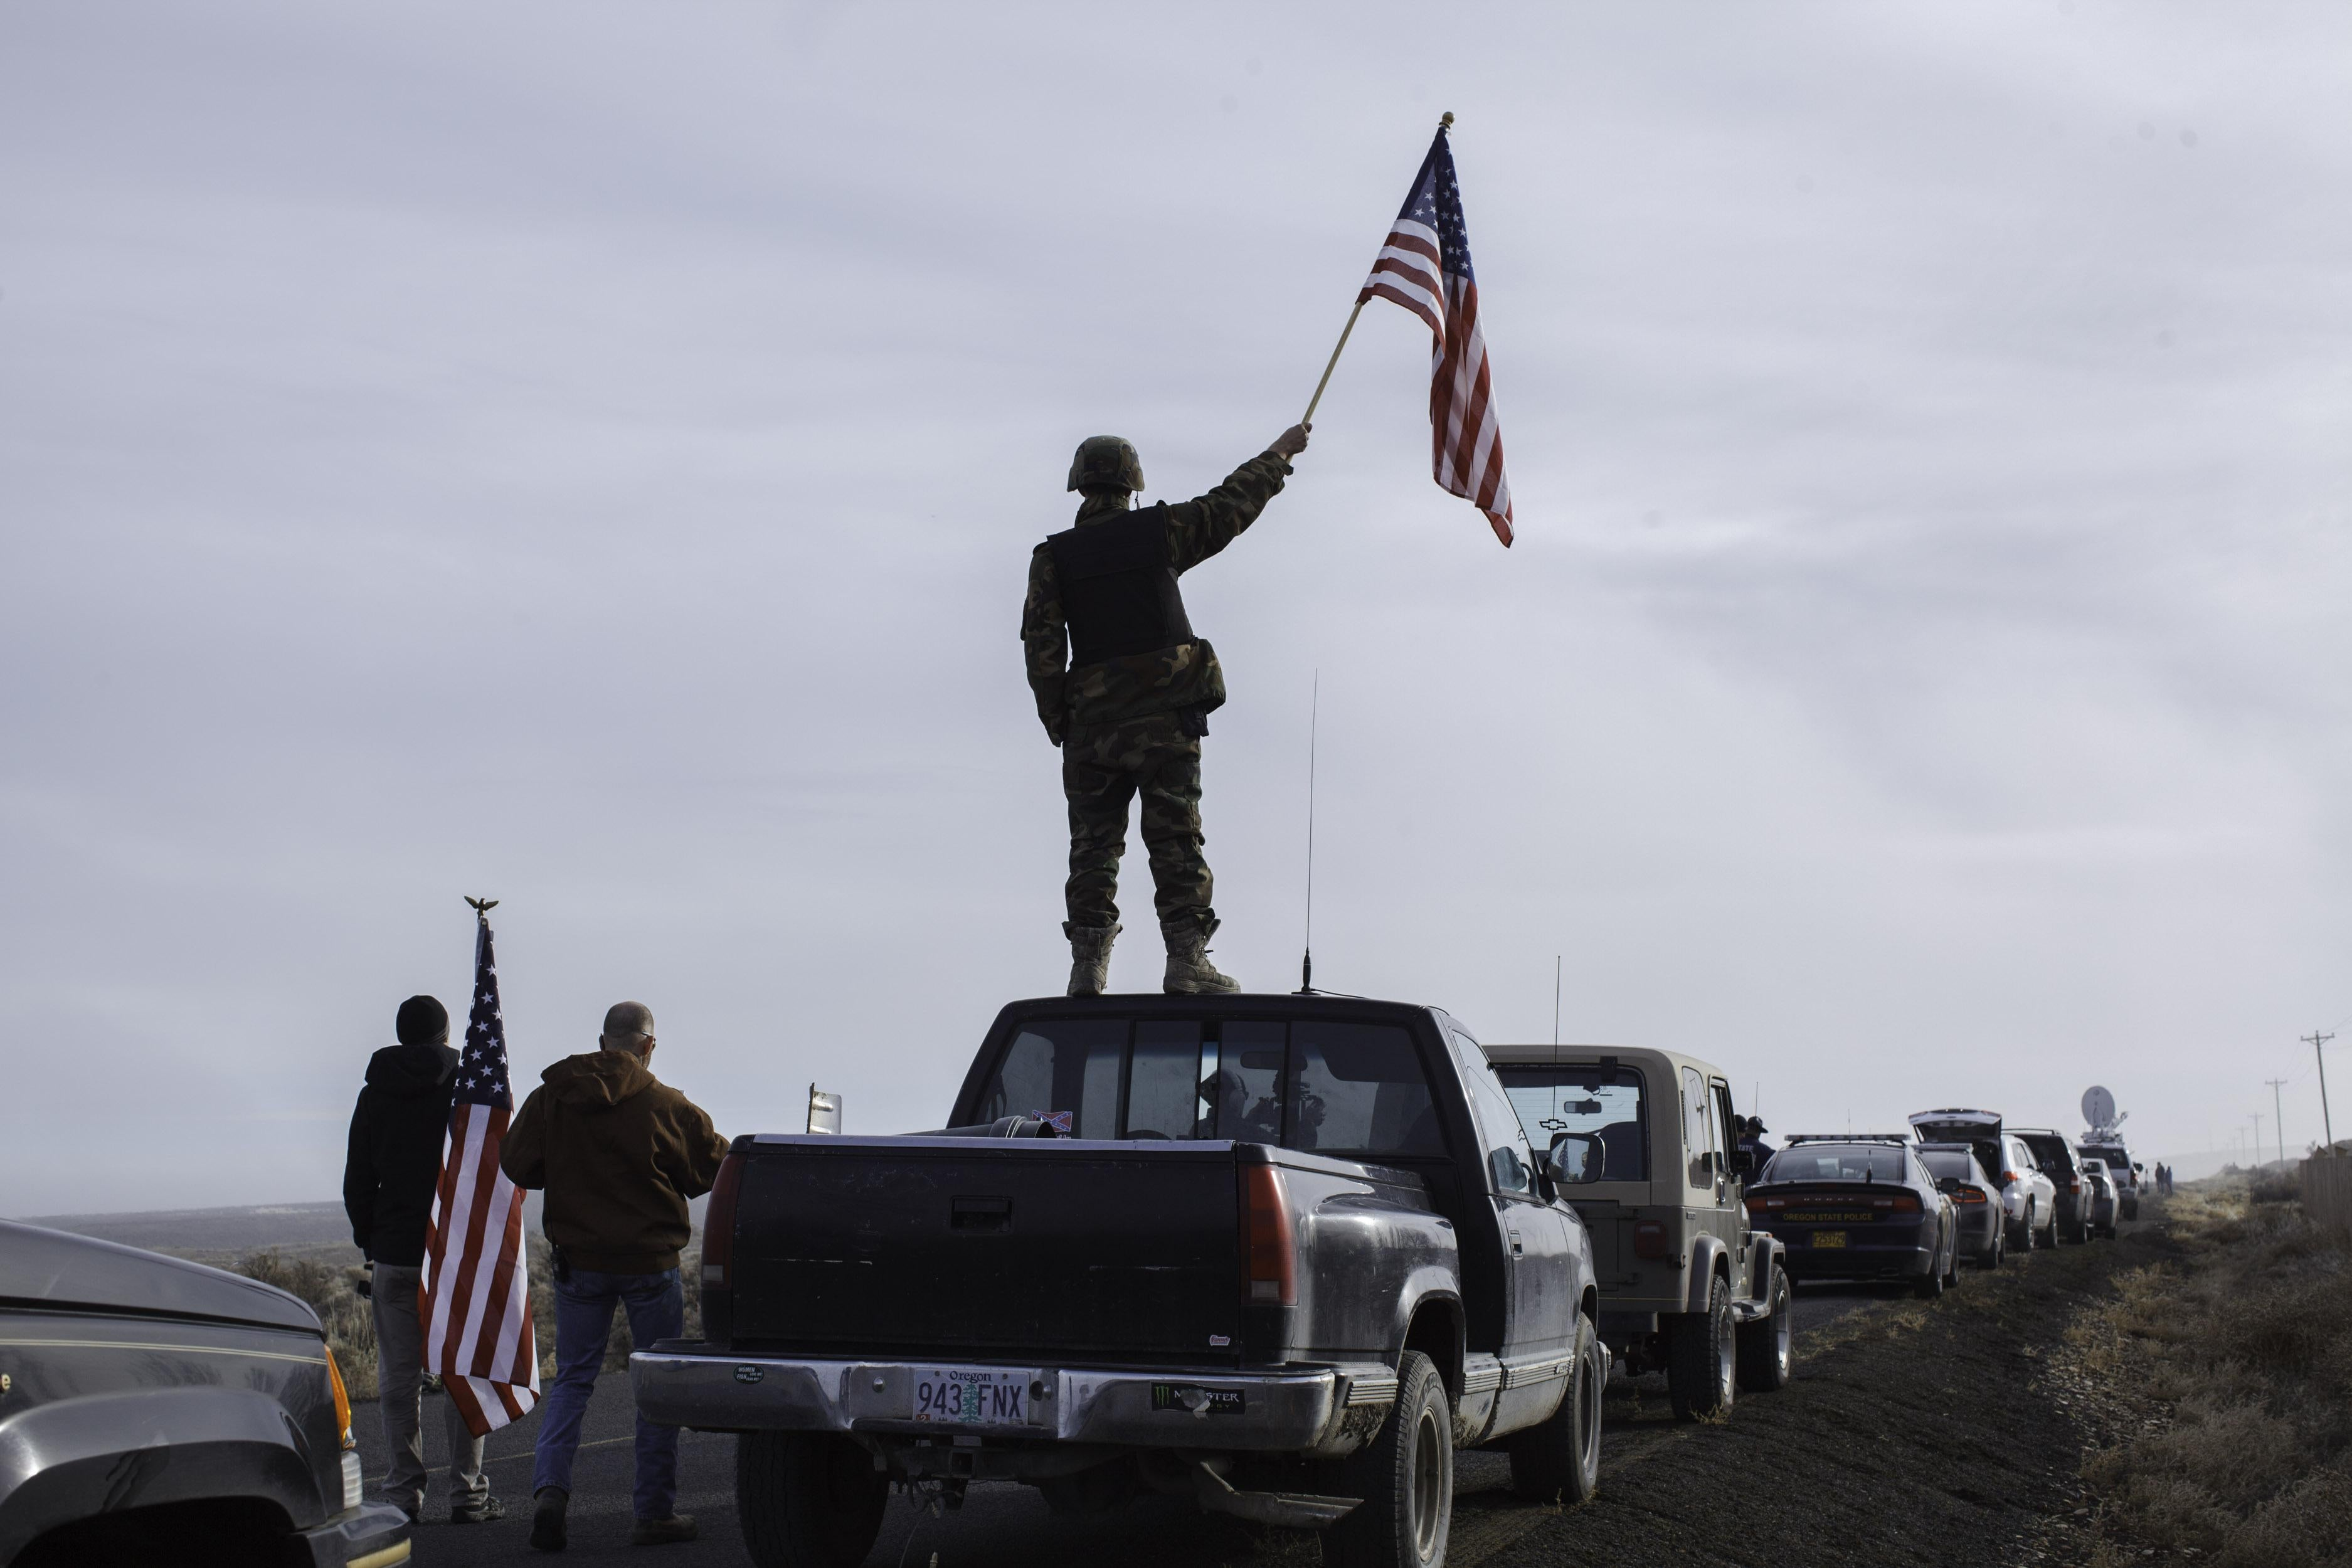 A protester dressed in military gear stands on top of a pickup truck holding an American flag.